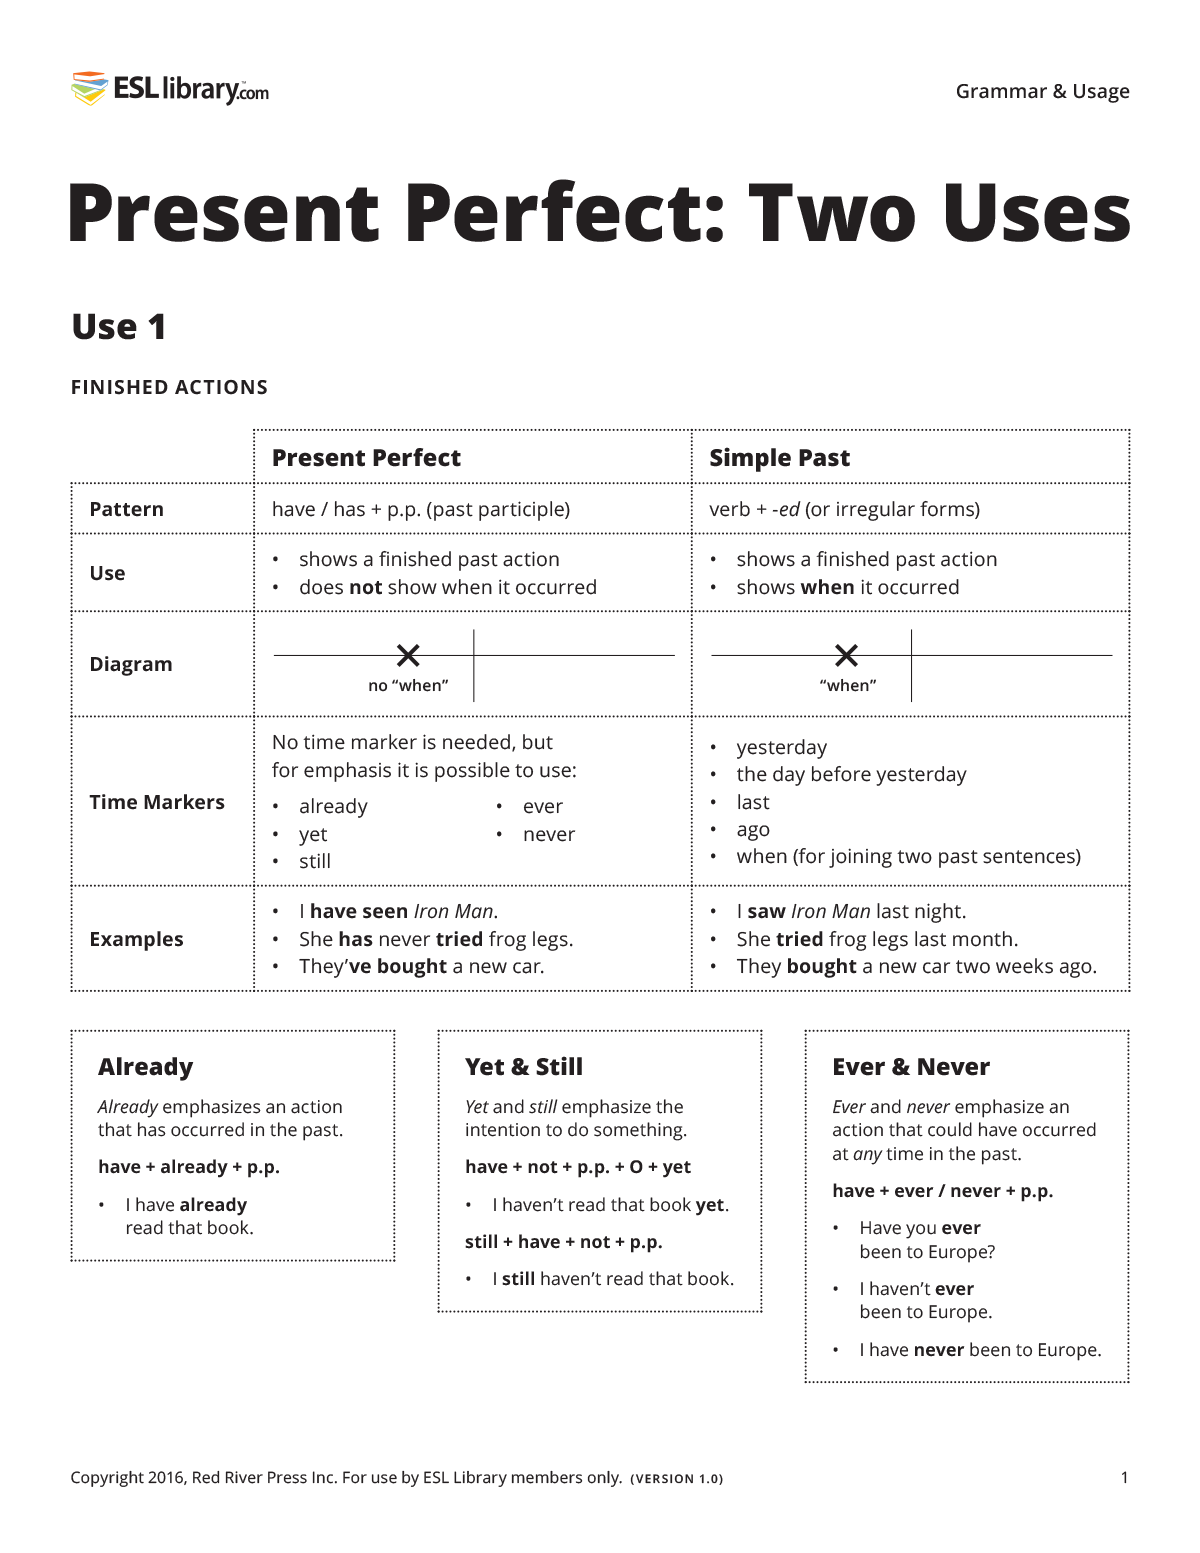 Chart of present perfect use #1